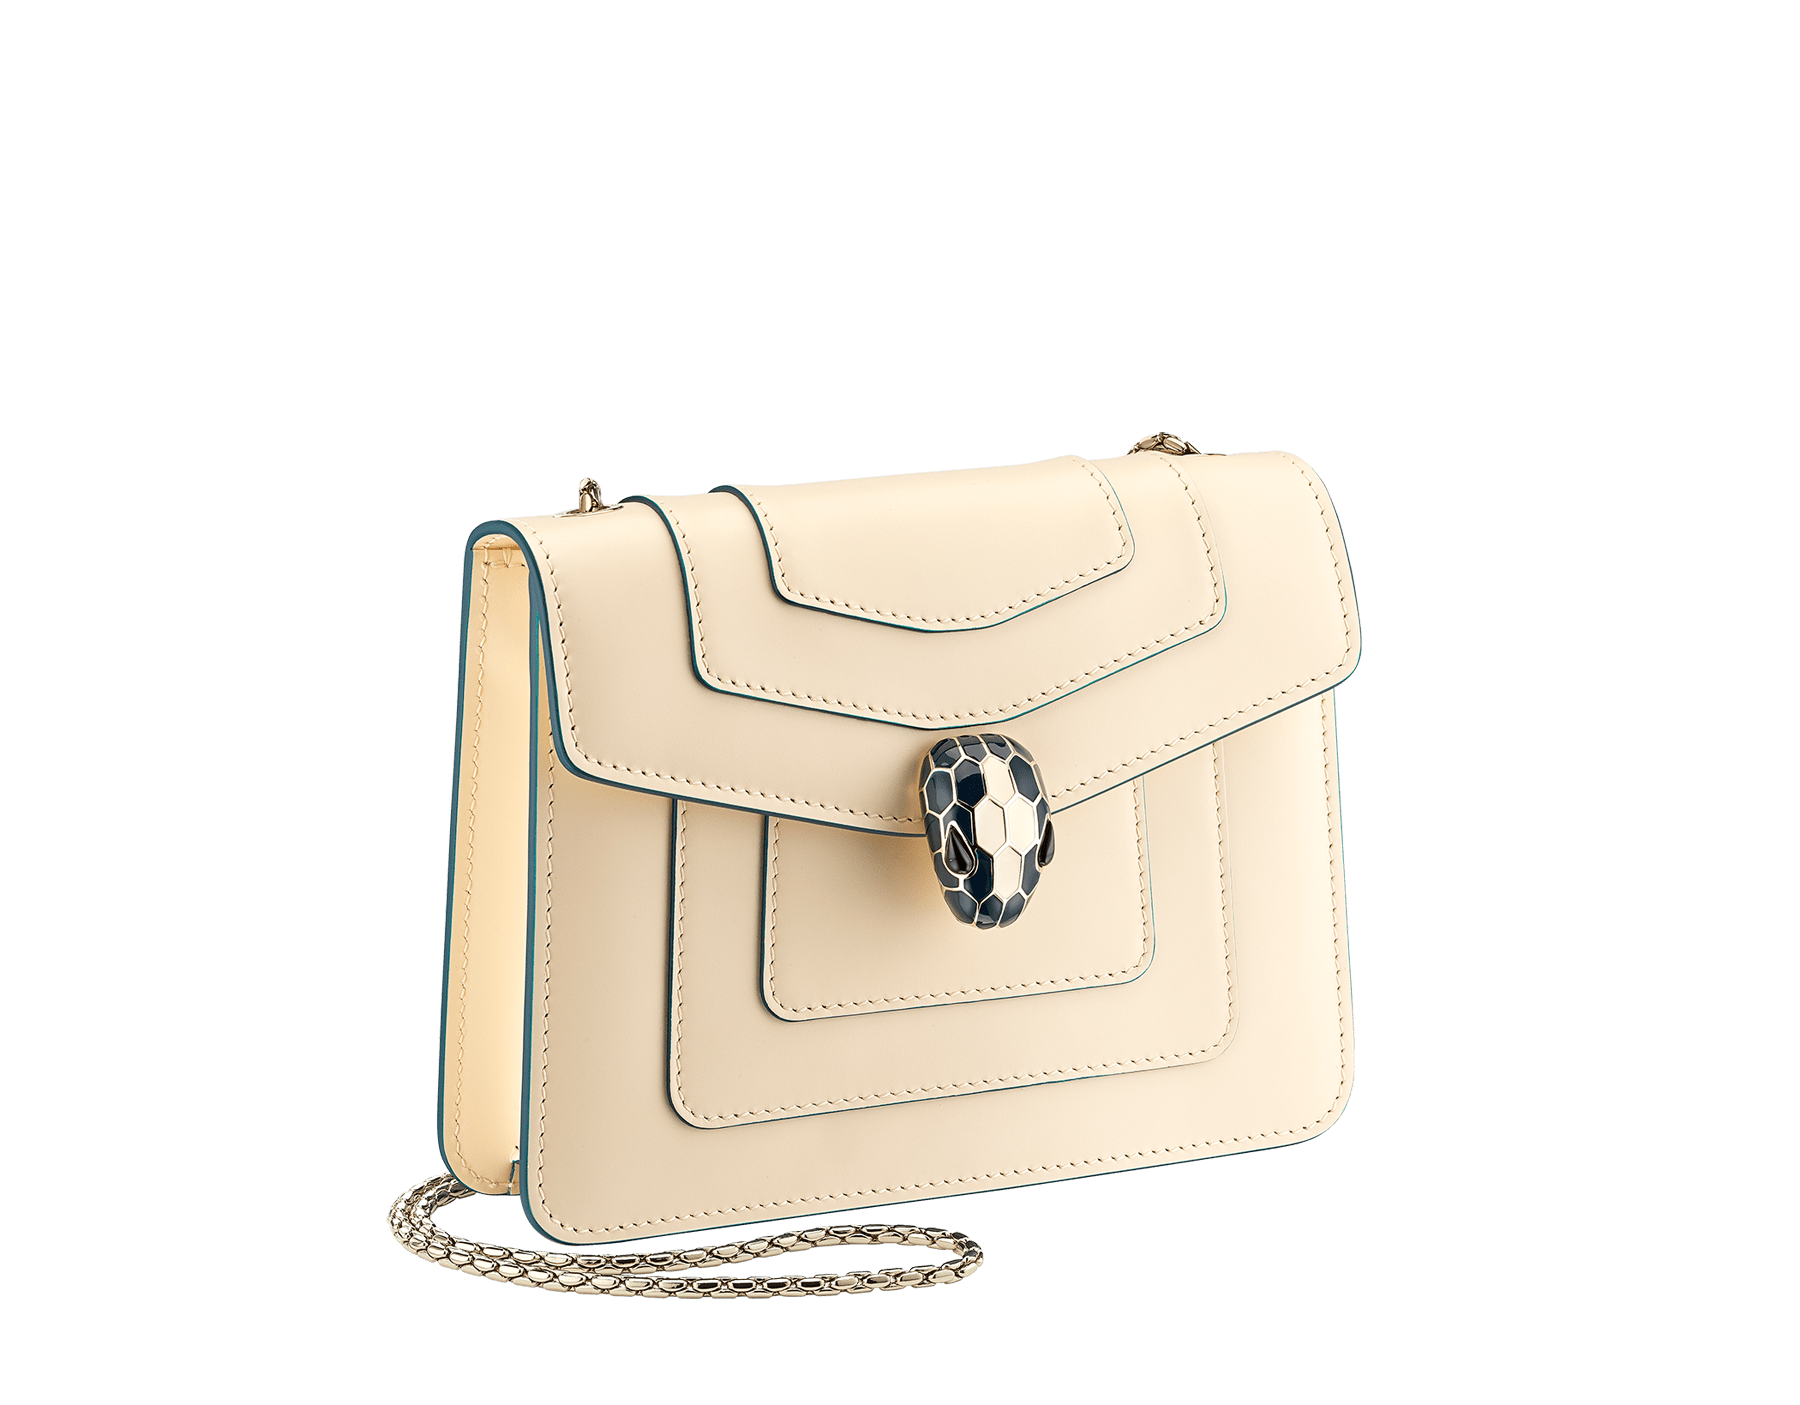 """""""Serpenti Forever"""" crossbody bag in peach calf leather with Pink Spinel fuchsia grosgrain inner lining. Iconic snakehead closure in light gold-plated brass enriched with black and white agate enamel and green malachite eyes. 422-CLb image 2"""